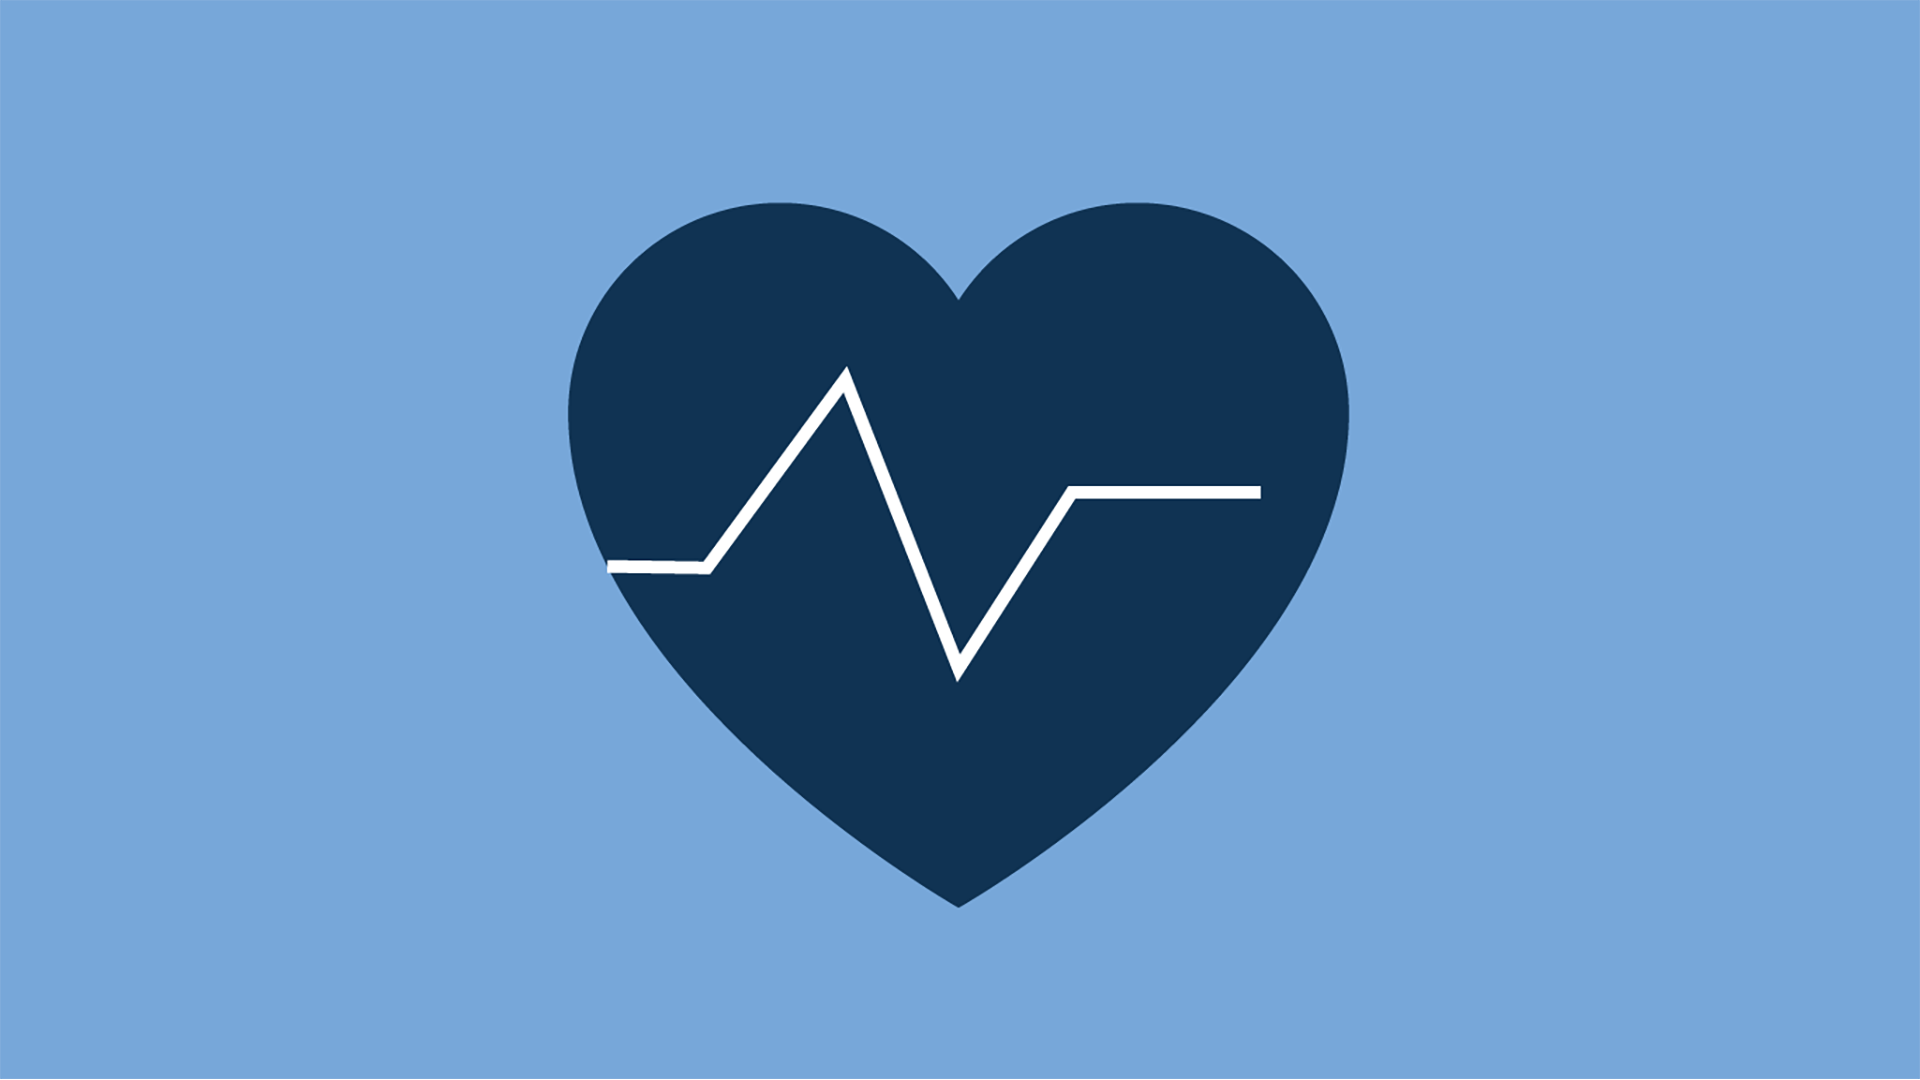 Heartbeat icon.